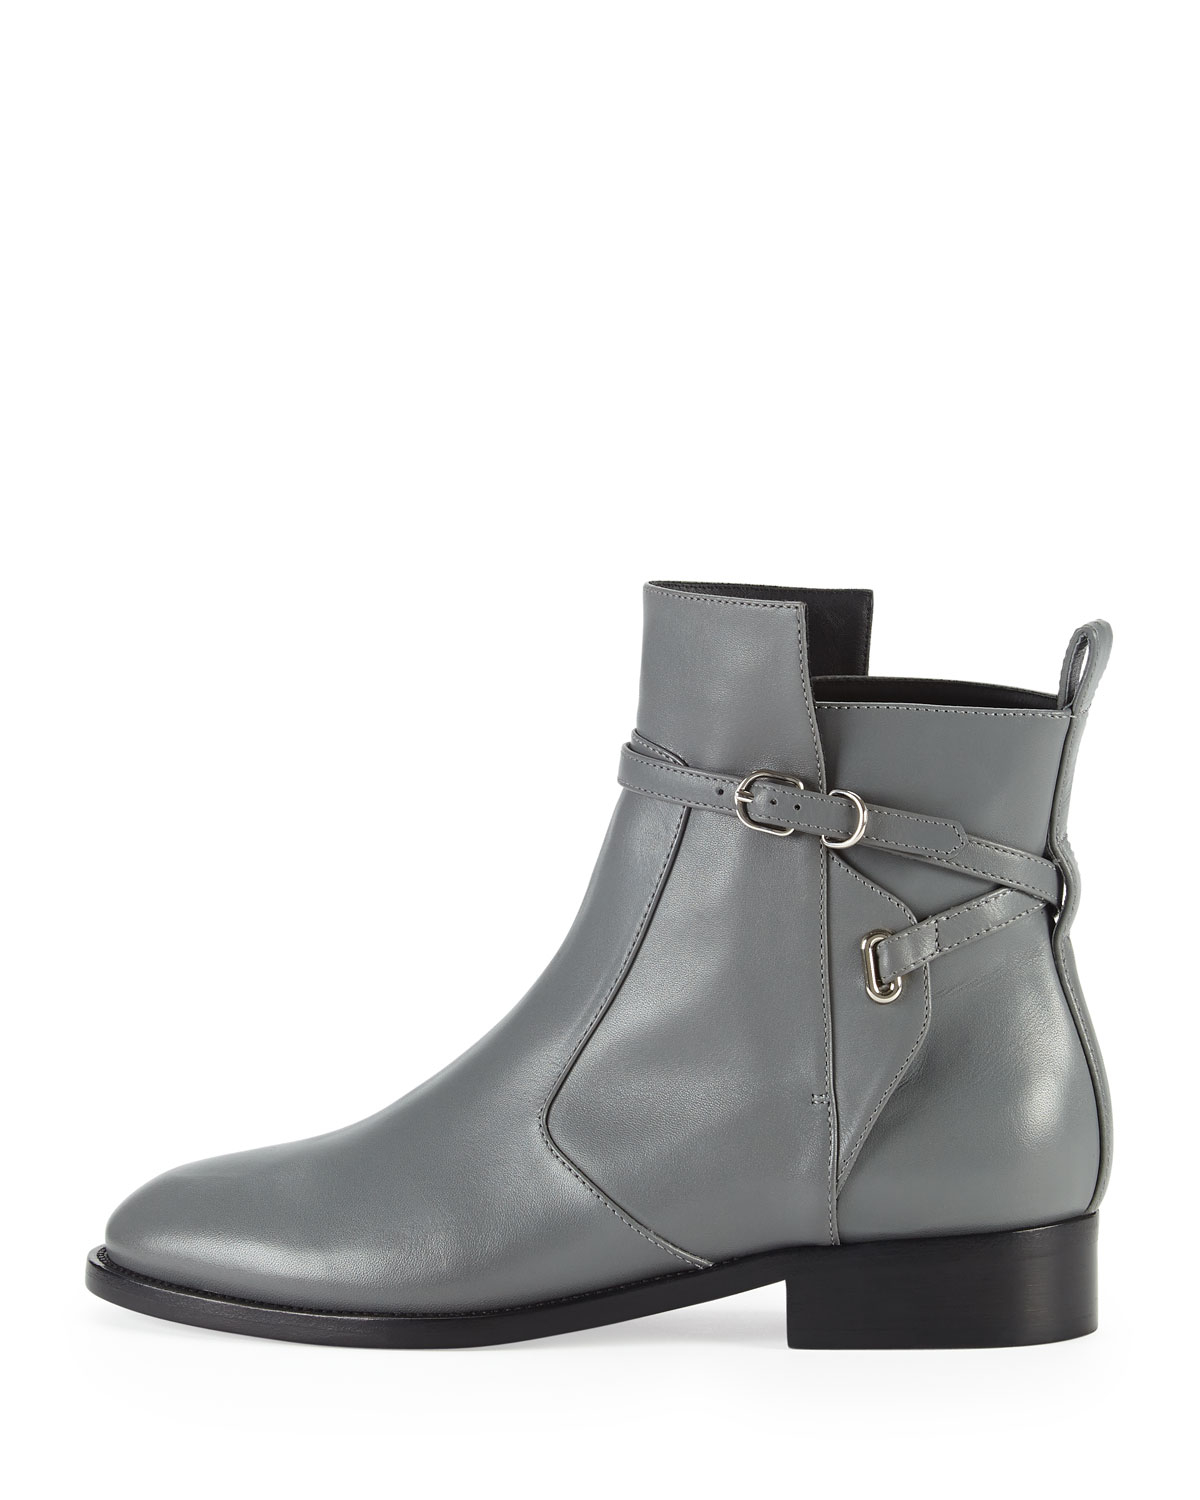 Gray Ankle Boots Flat : Gray.biji.us